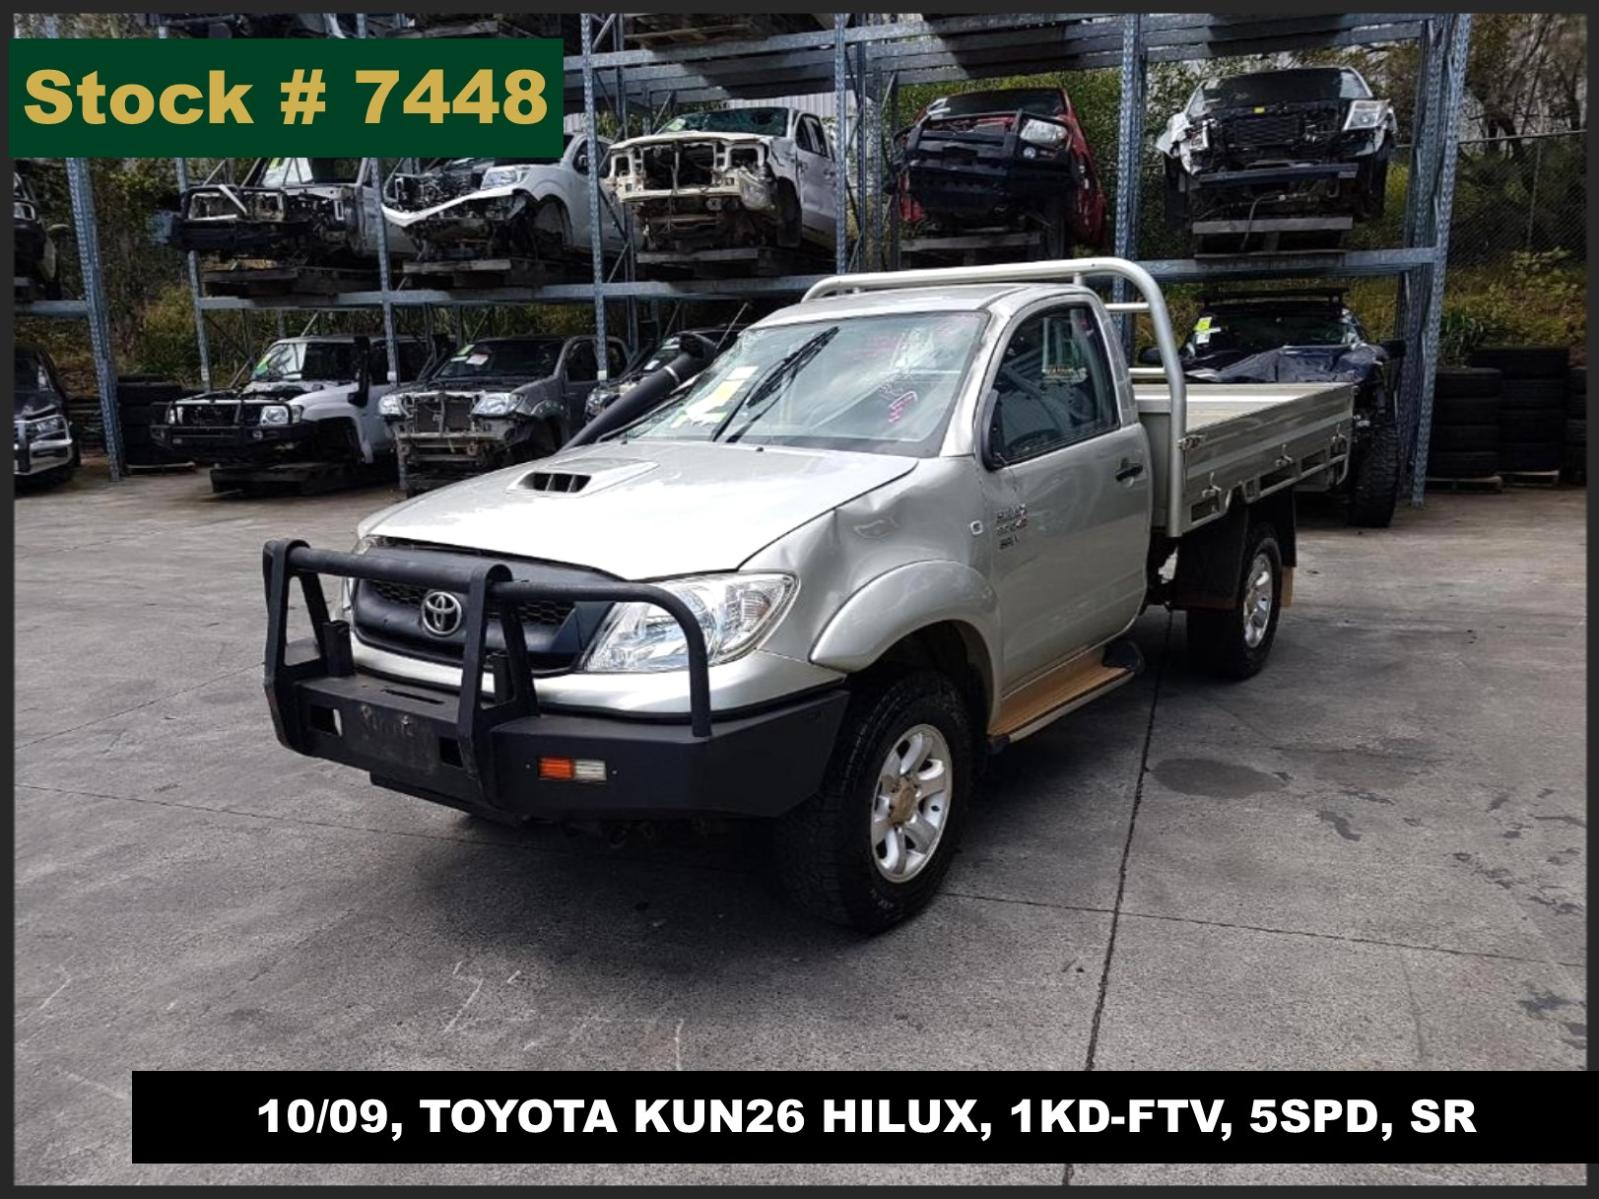 Image for a Toyota Hilux 2010 2 Door Utility